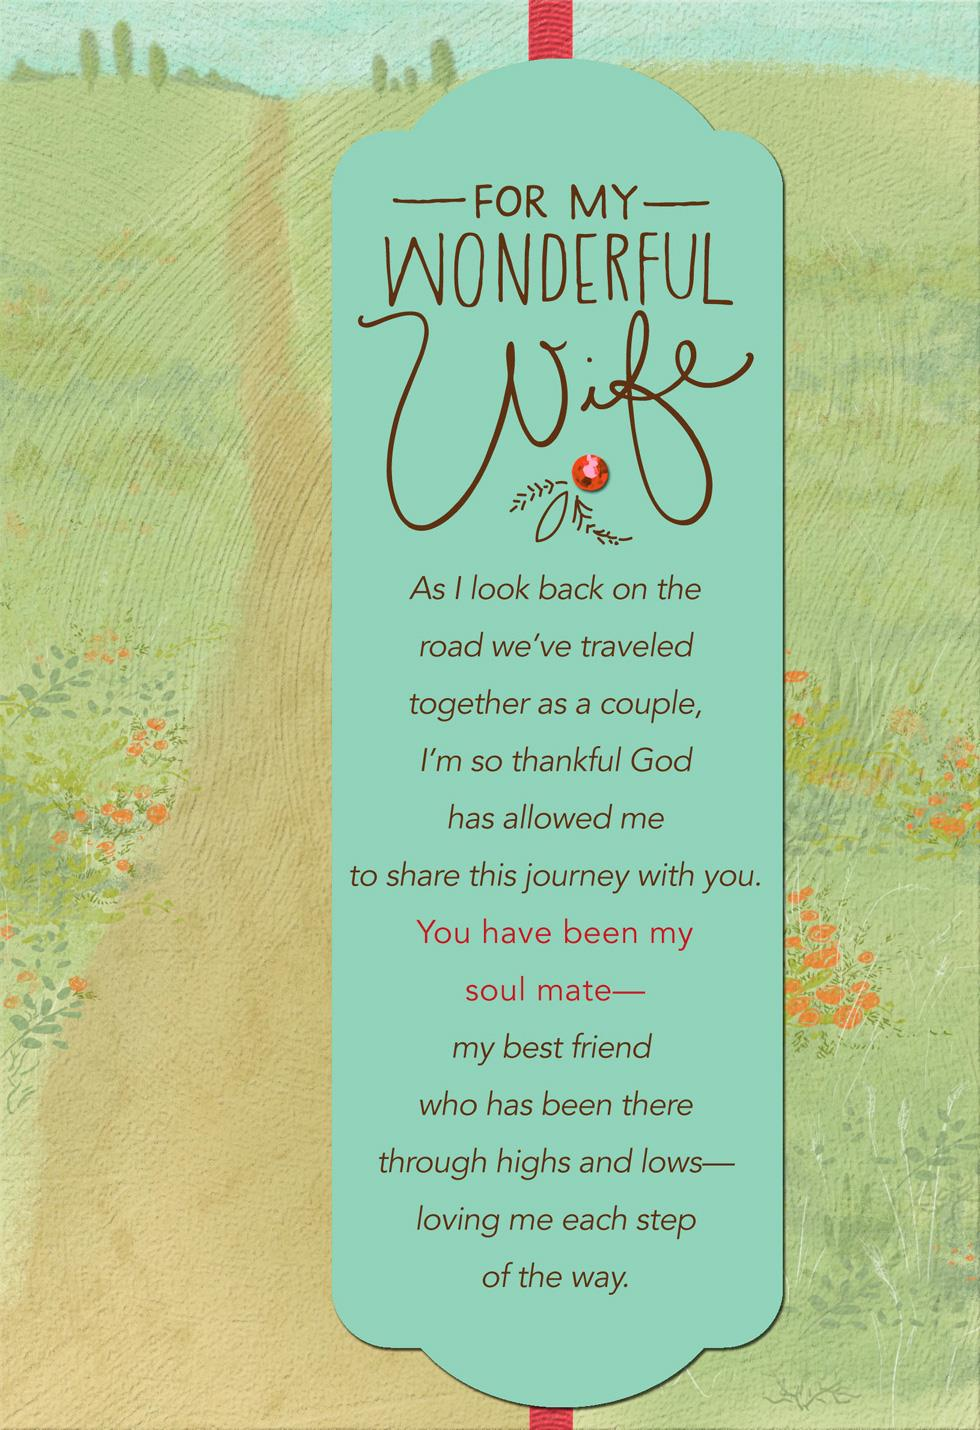 My soul mate religious mothers day card for wife greeting cards my soul mate religious mothers day card for wife kristyandbryce Images